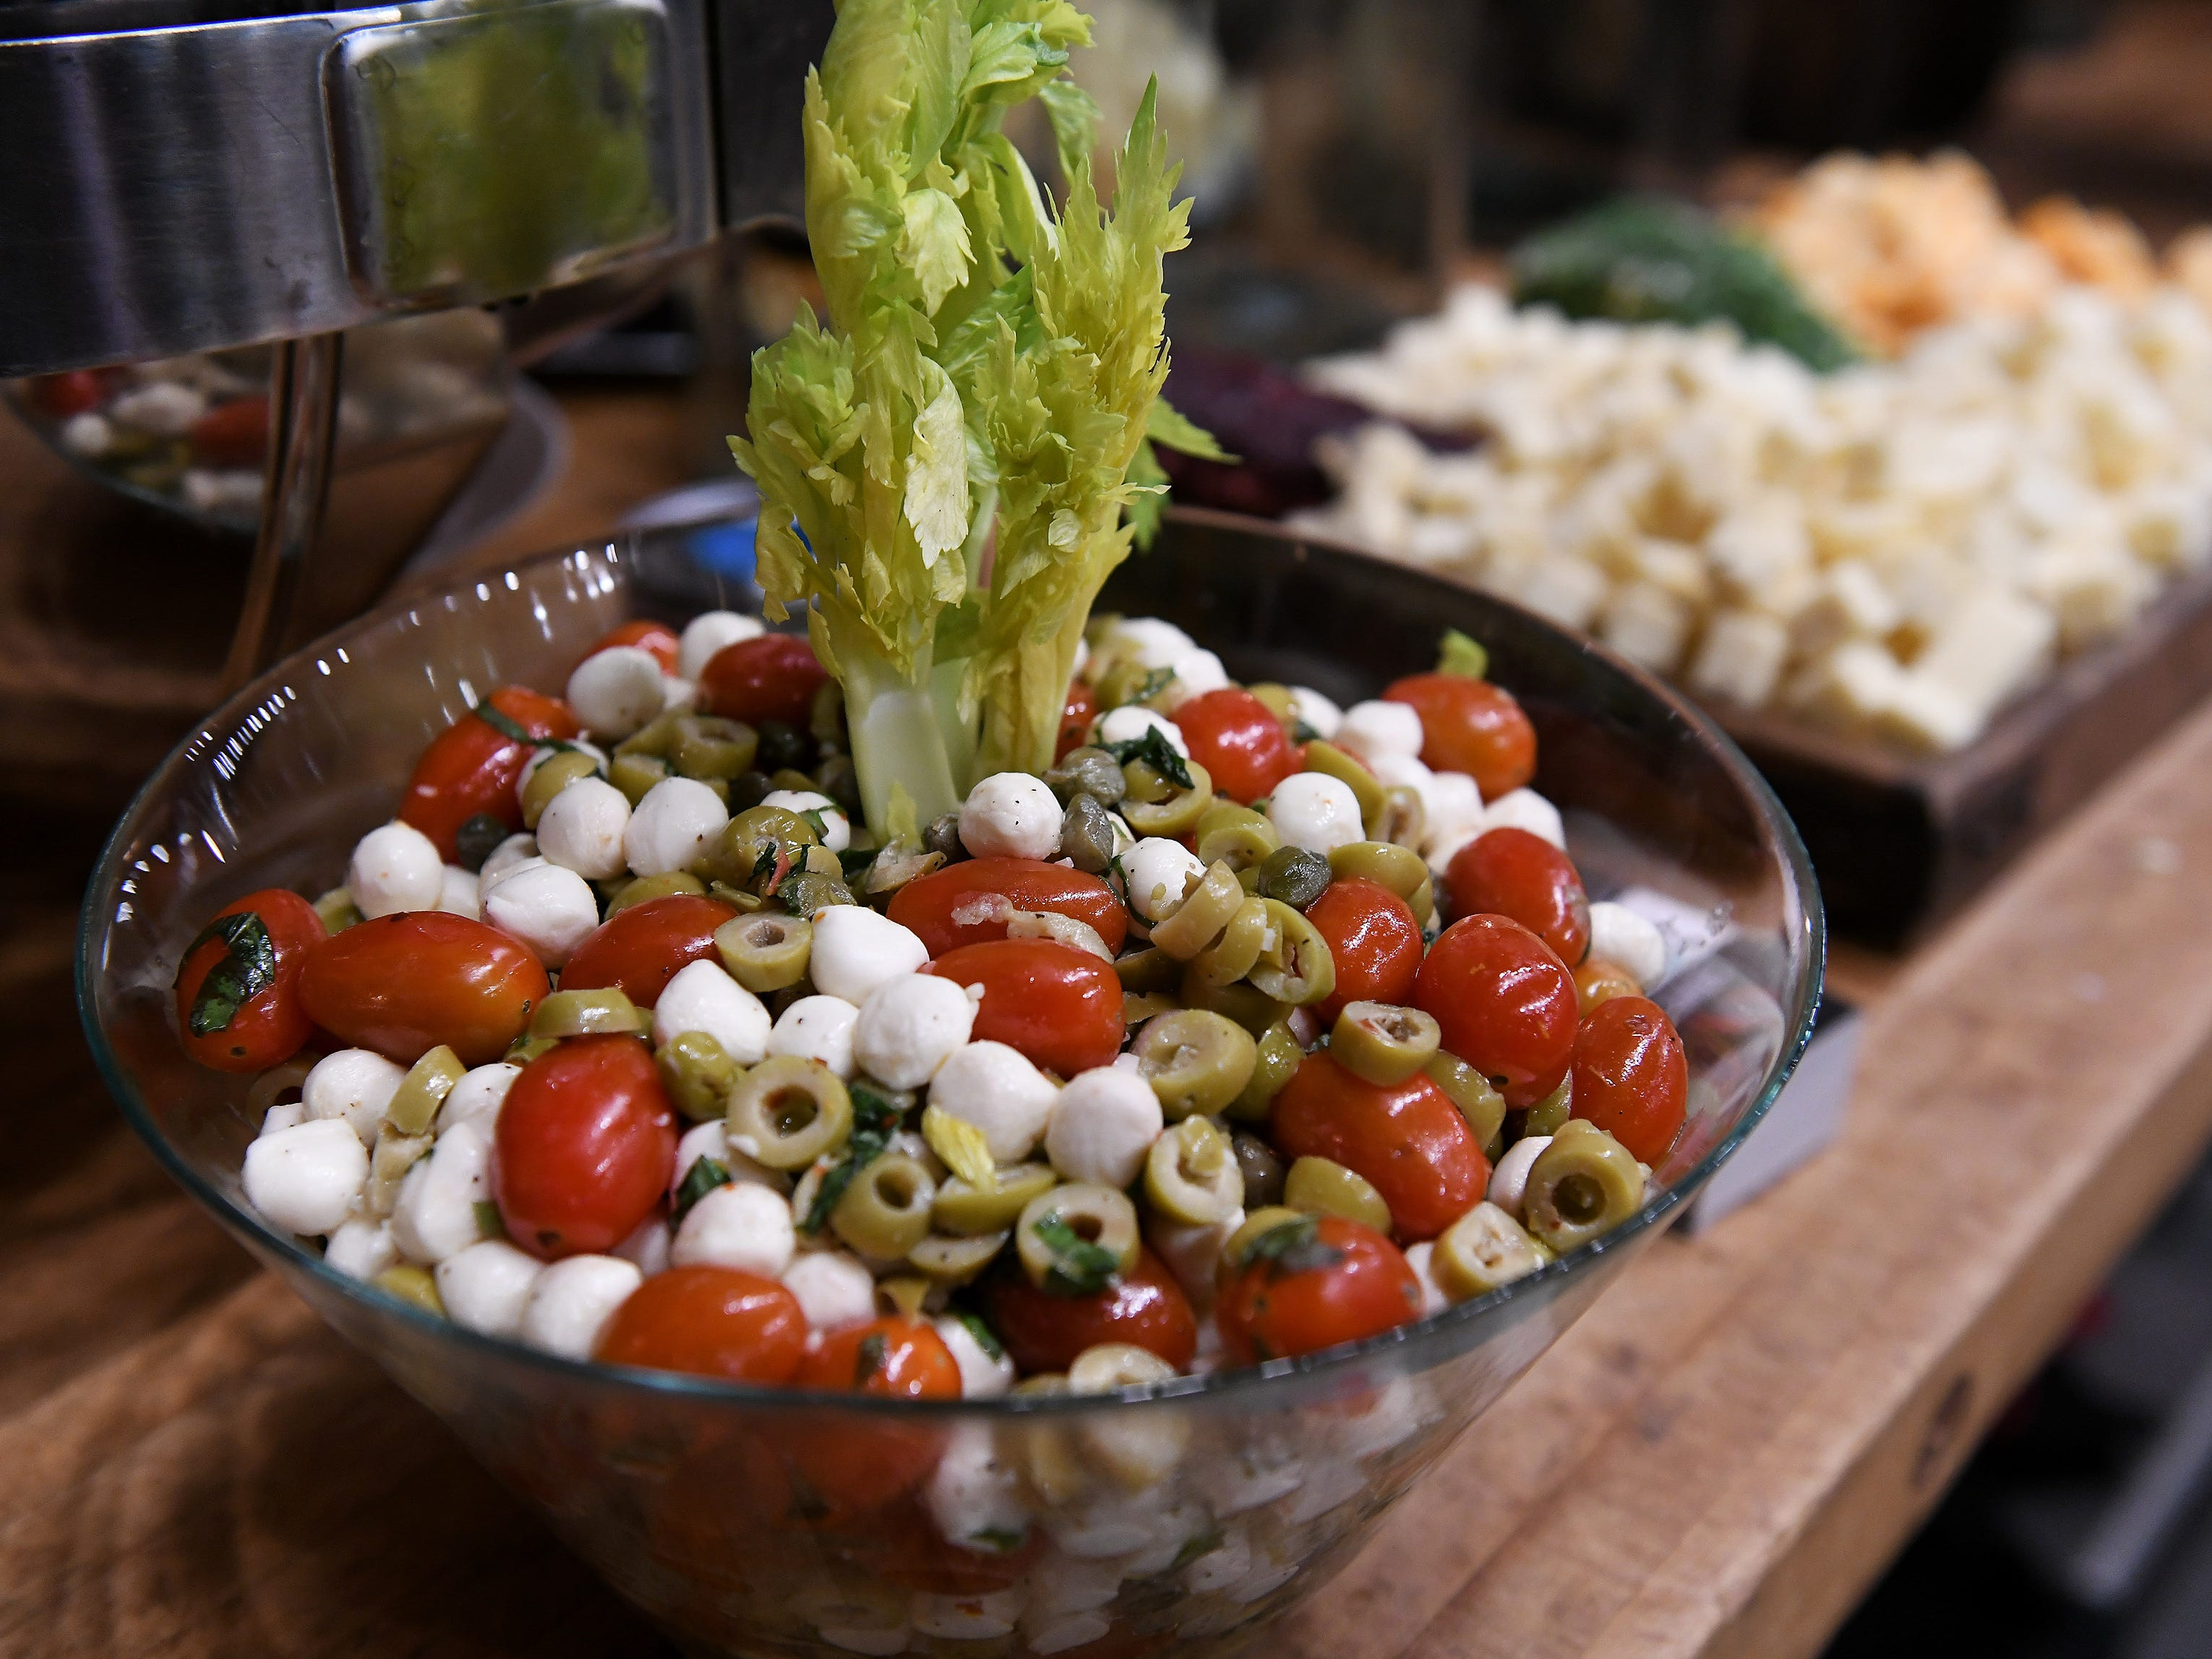 Cherry tomatoes, mozzarella and olives are part of the appetizers provided by Craft Creative Catering.